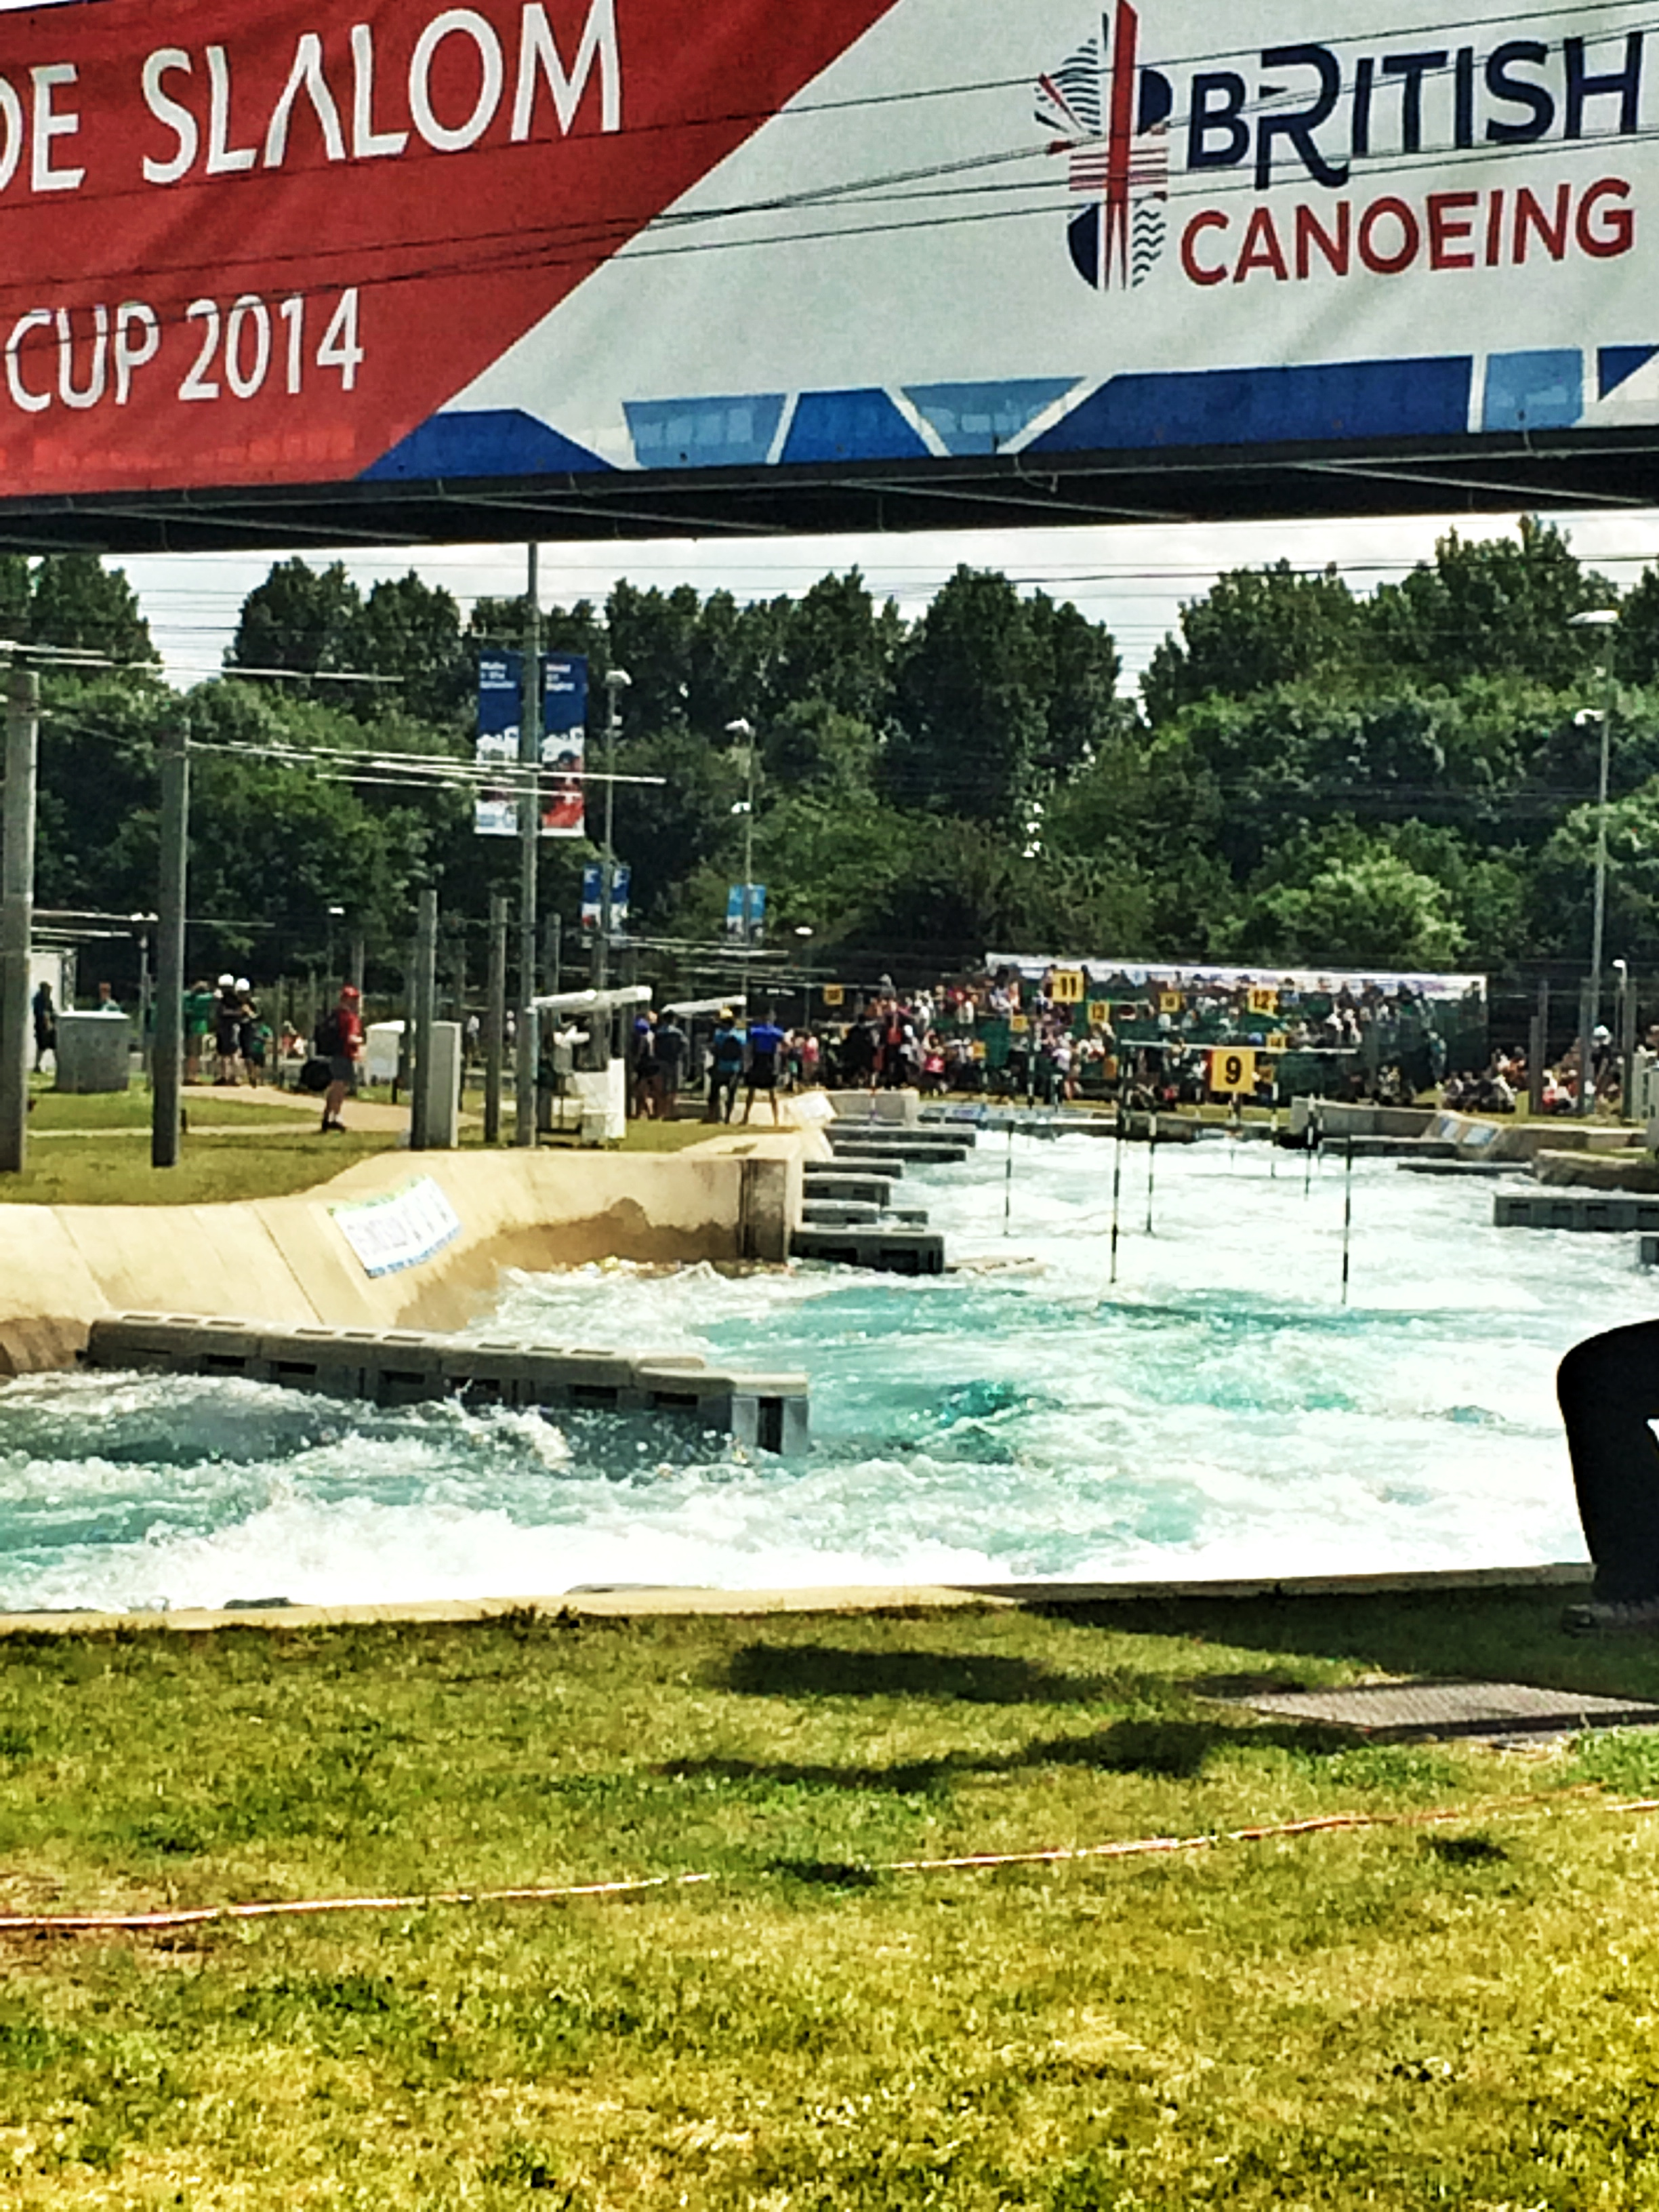 Canoe Slalom World Cup, Lea Valley